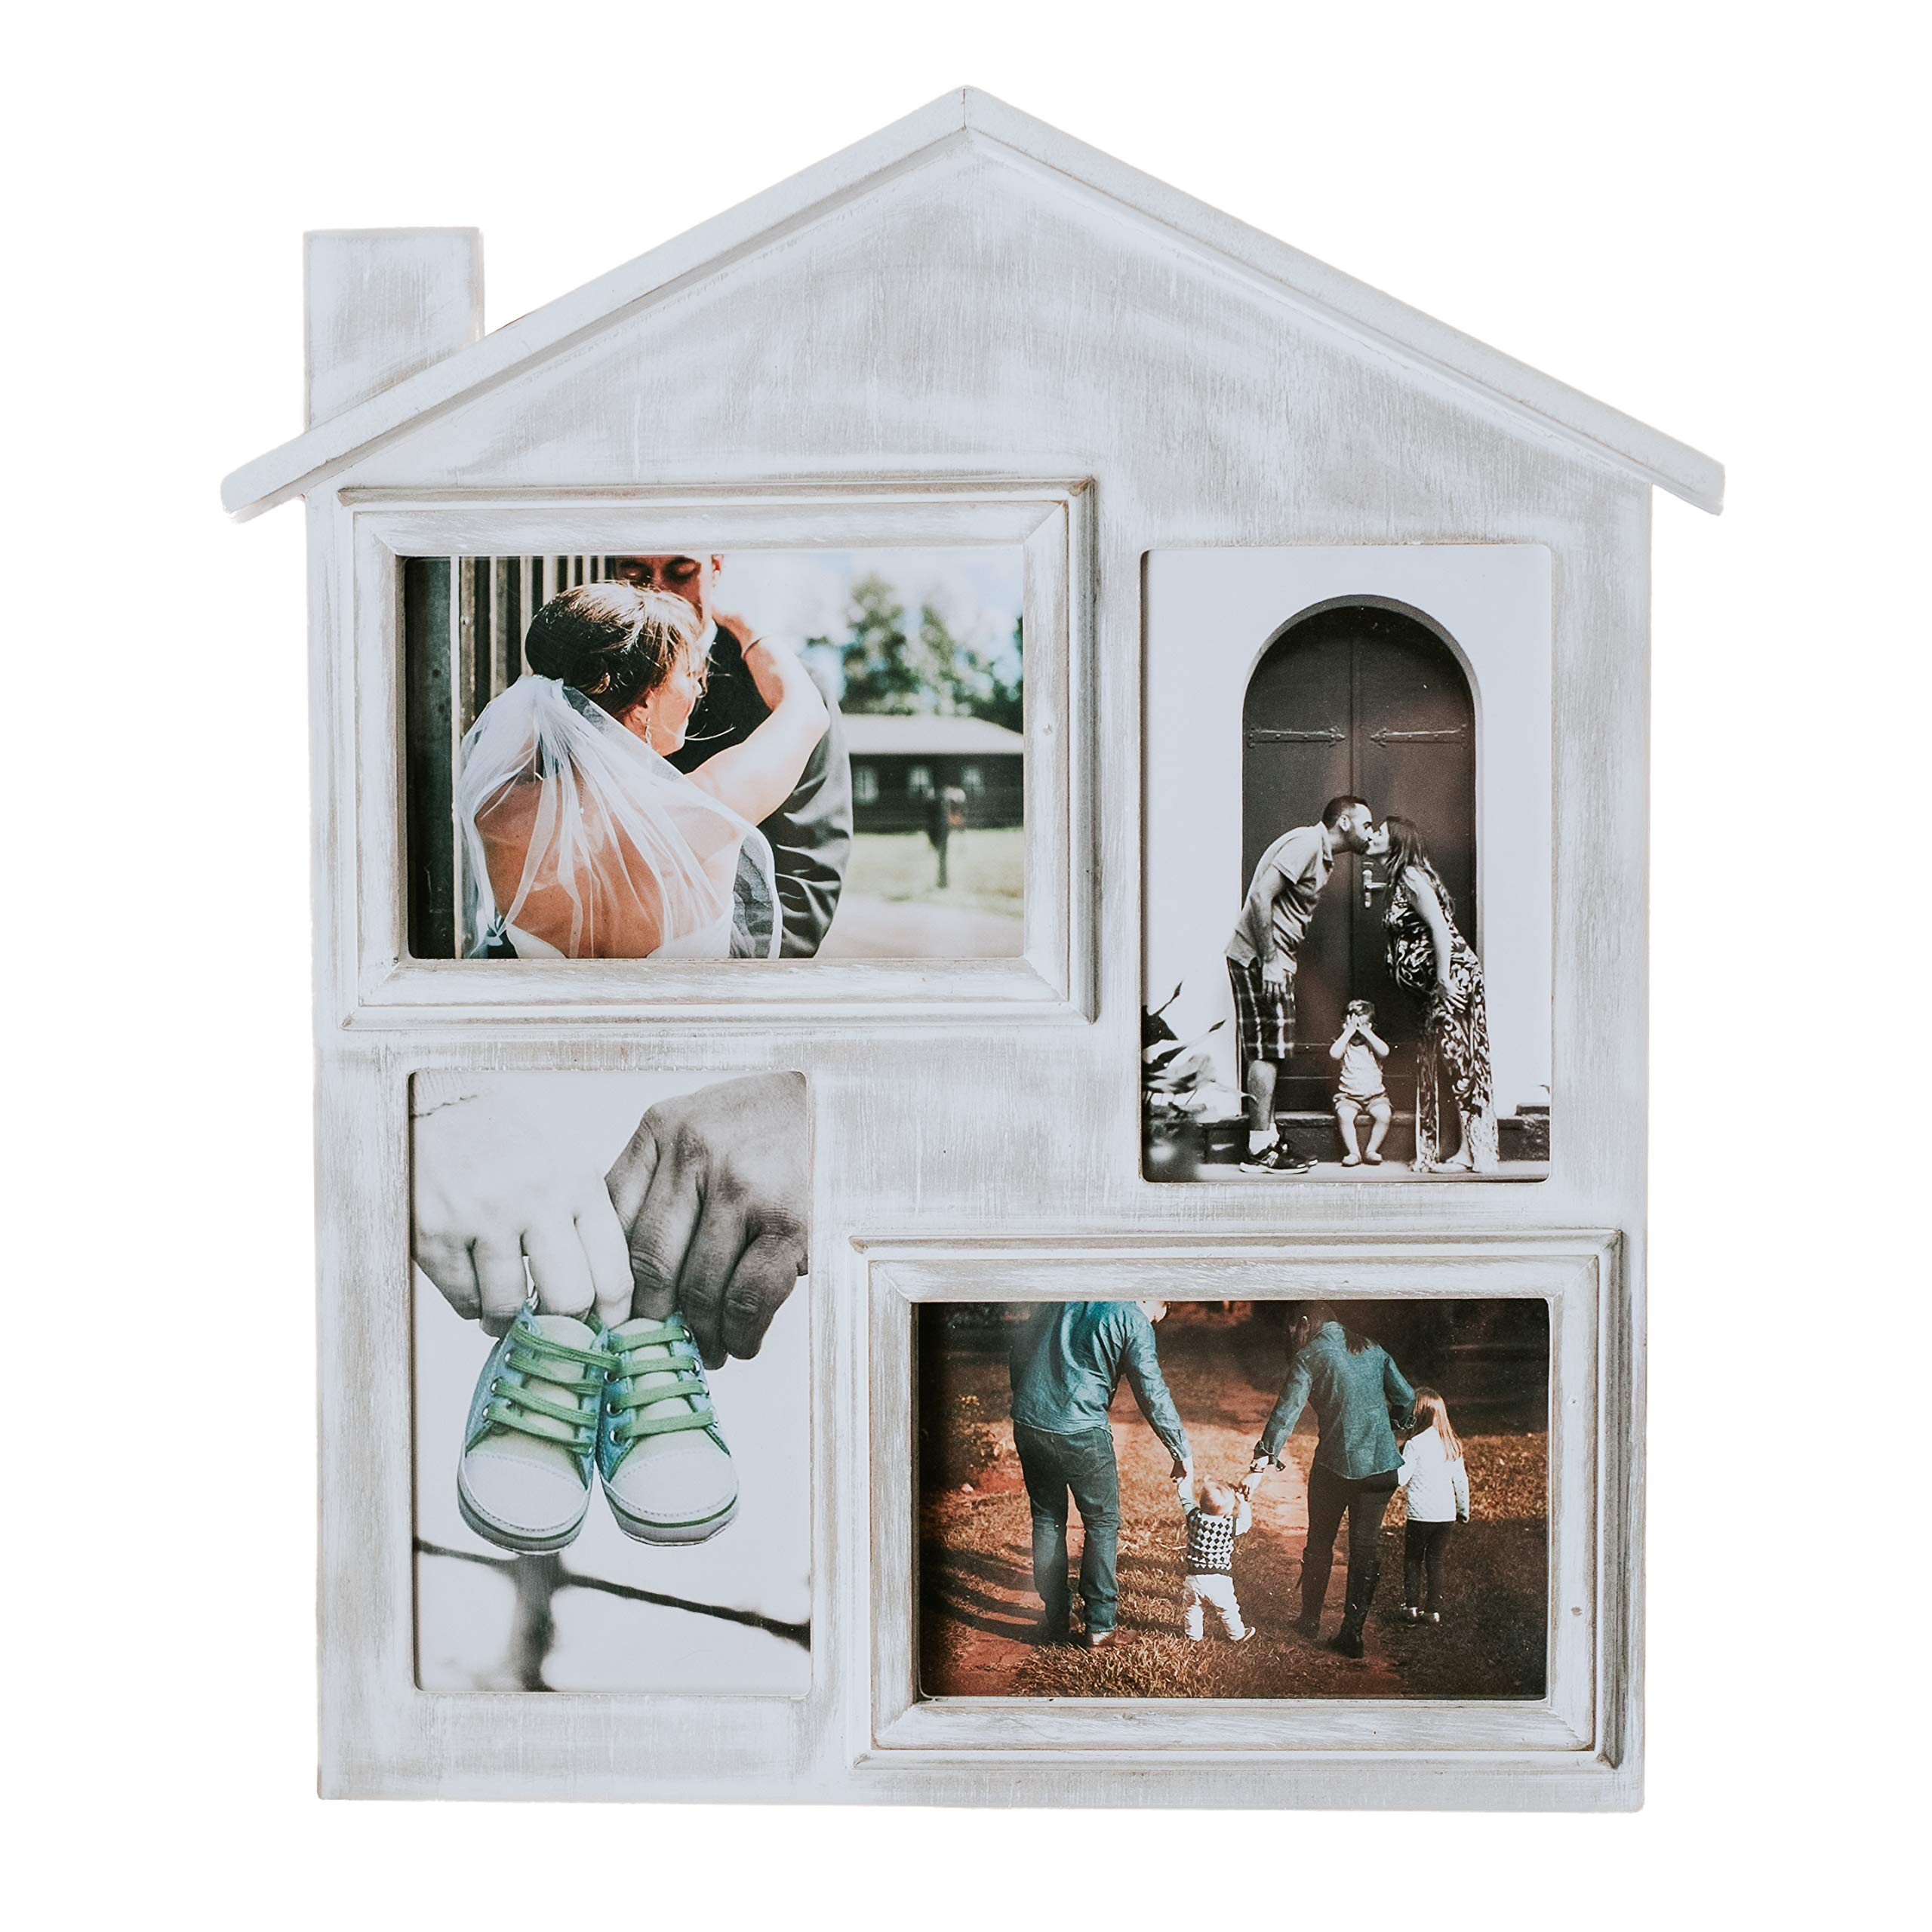 Farmhouse Picture Frame with Four 4 x 6 Picture Openings. Rustic Picture Frame is Ideal for Kitchen, Hanging, or Desk. Picture Frame is Rustic & Vintage Farmhouse Good for Table, Desktop or Wall by FoxCarr